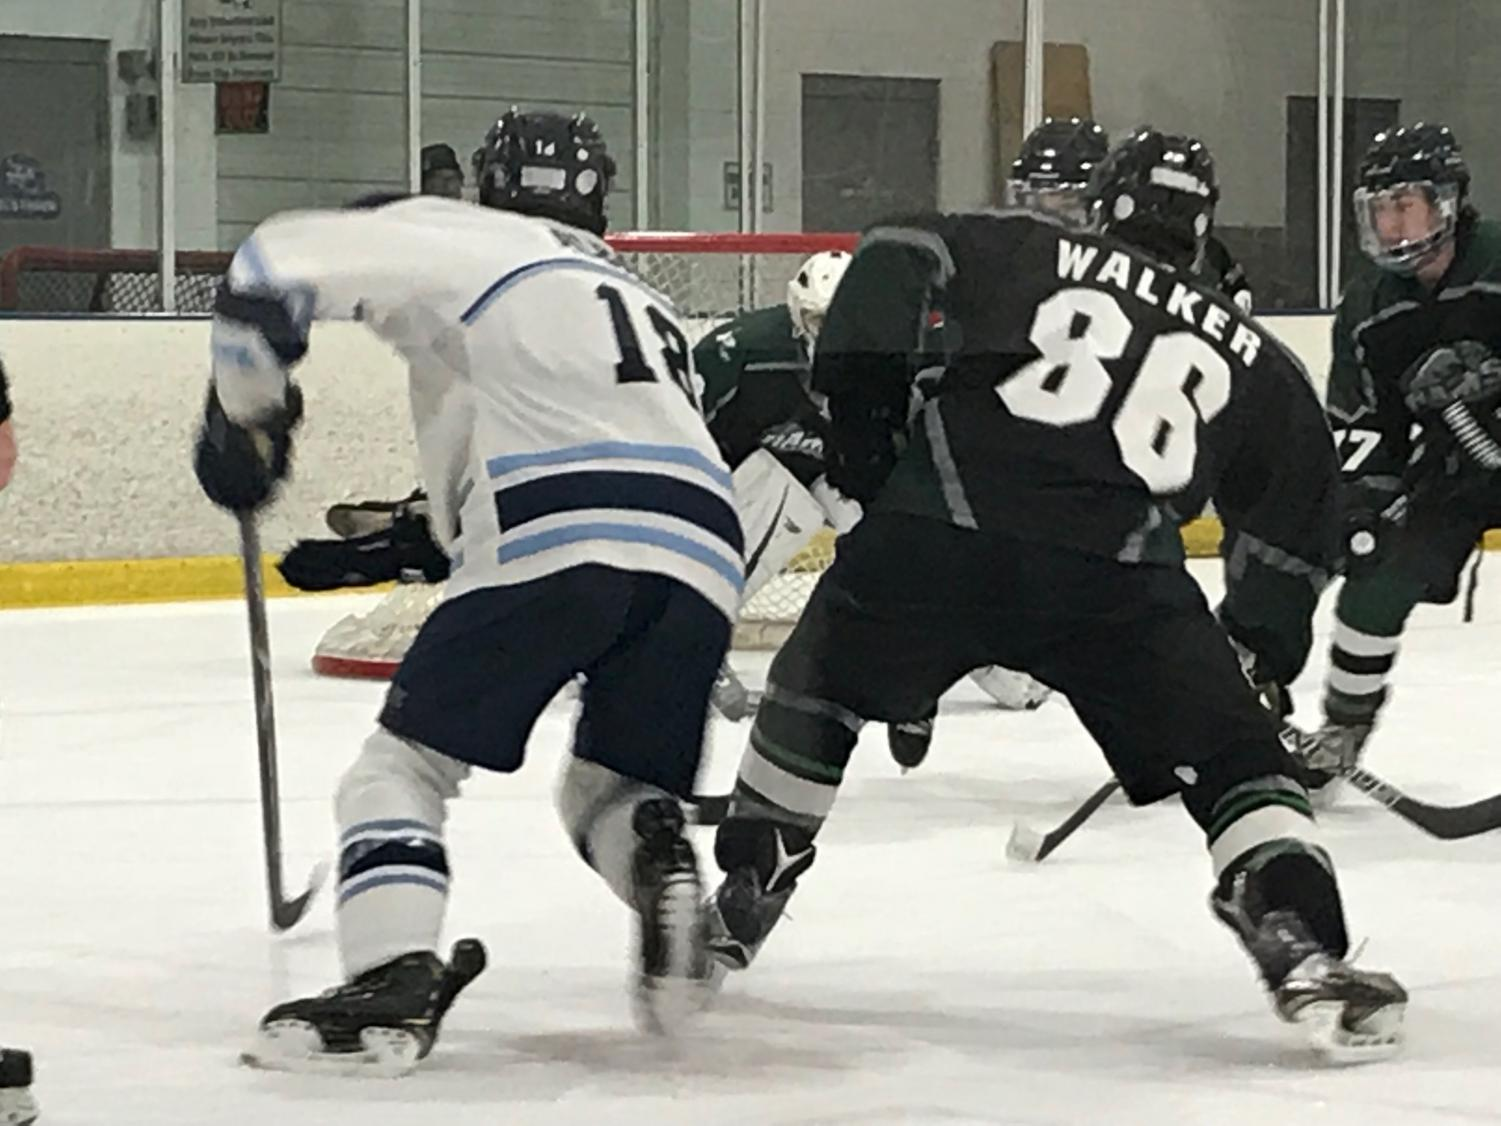 Jared Alabano battles for possession of the puck against a Rams defender